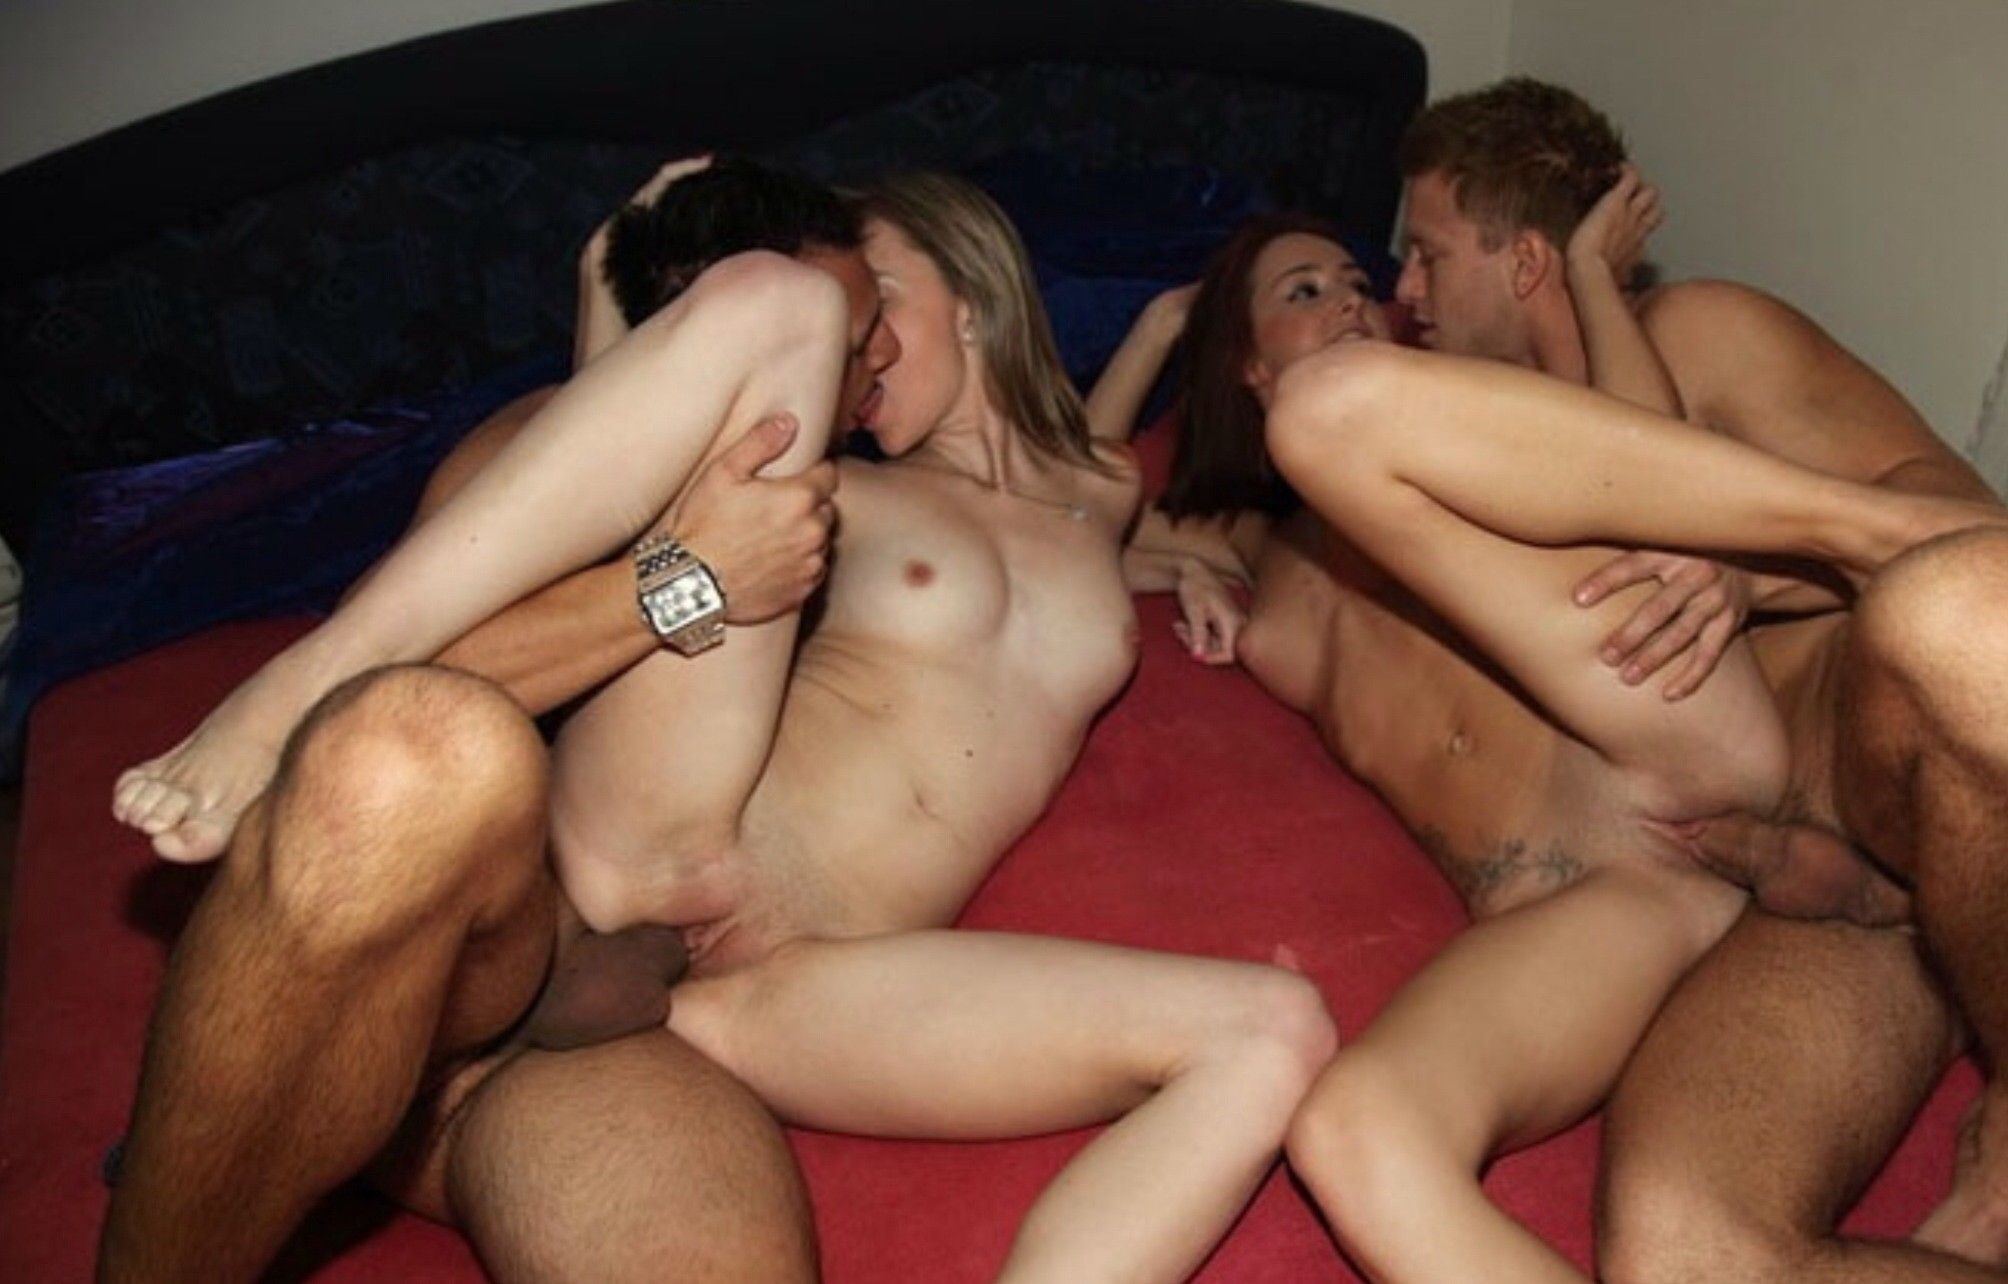 Group sex orgy party images